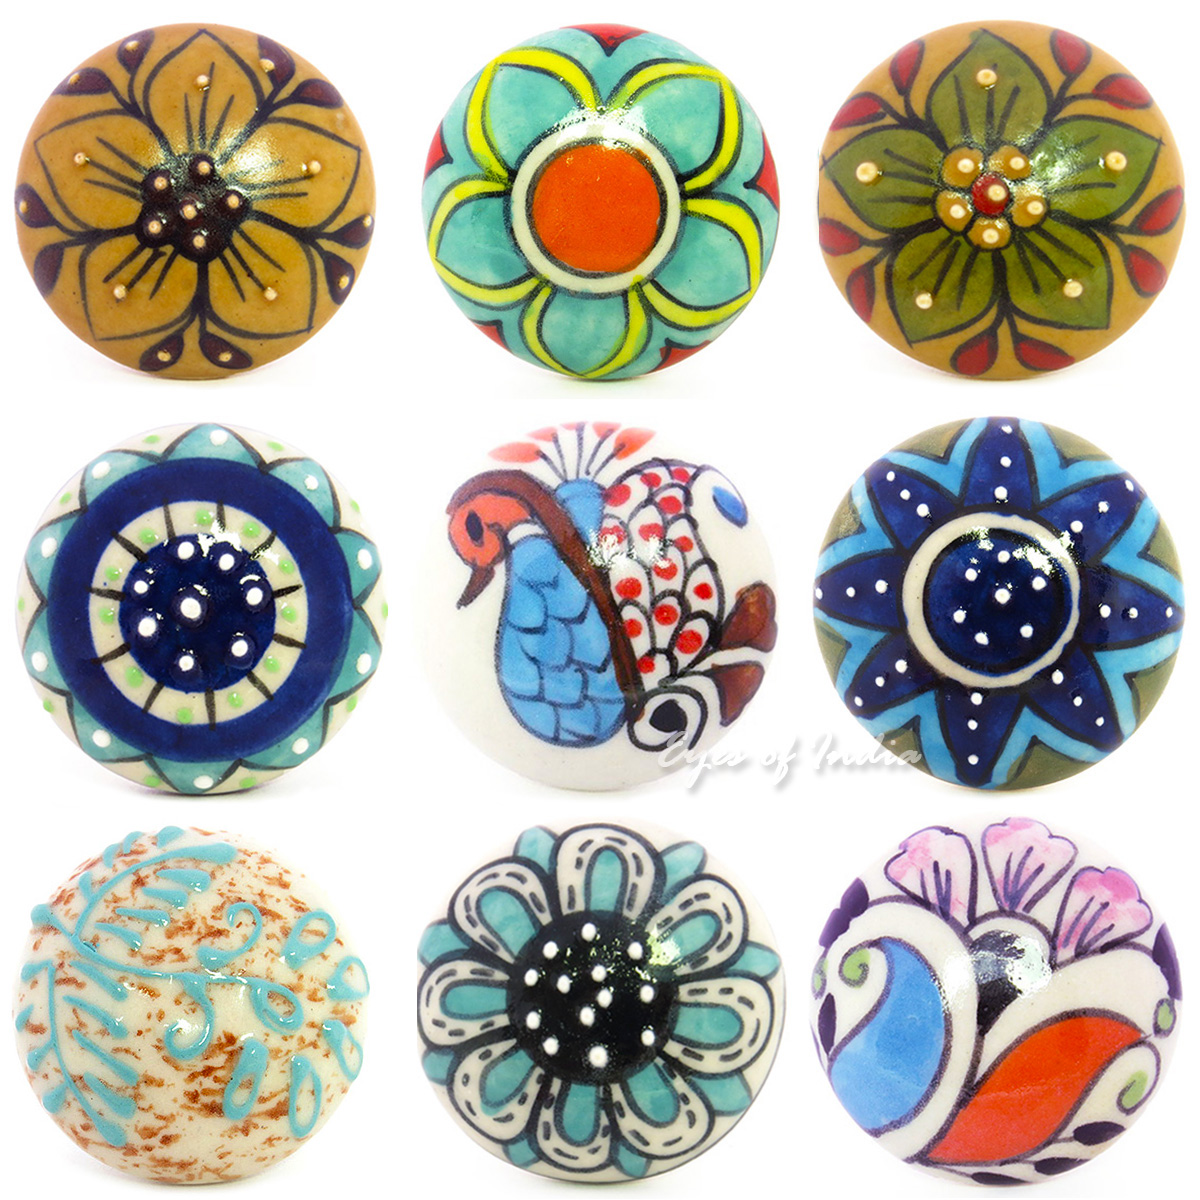 easily hand to painted beautiful knobs cabinet anthropologie diy decor pin knockoff download look door ceramic set make or like designer that decorative drawer minute designs worthy own your